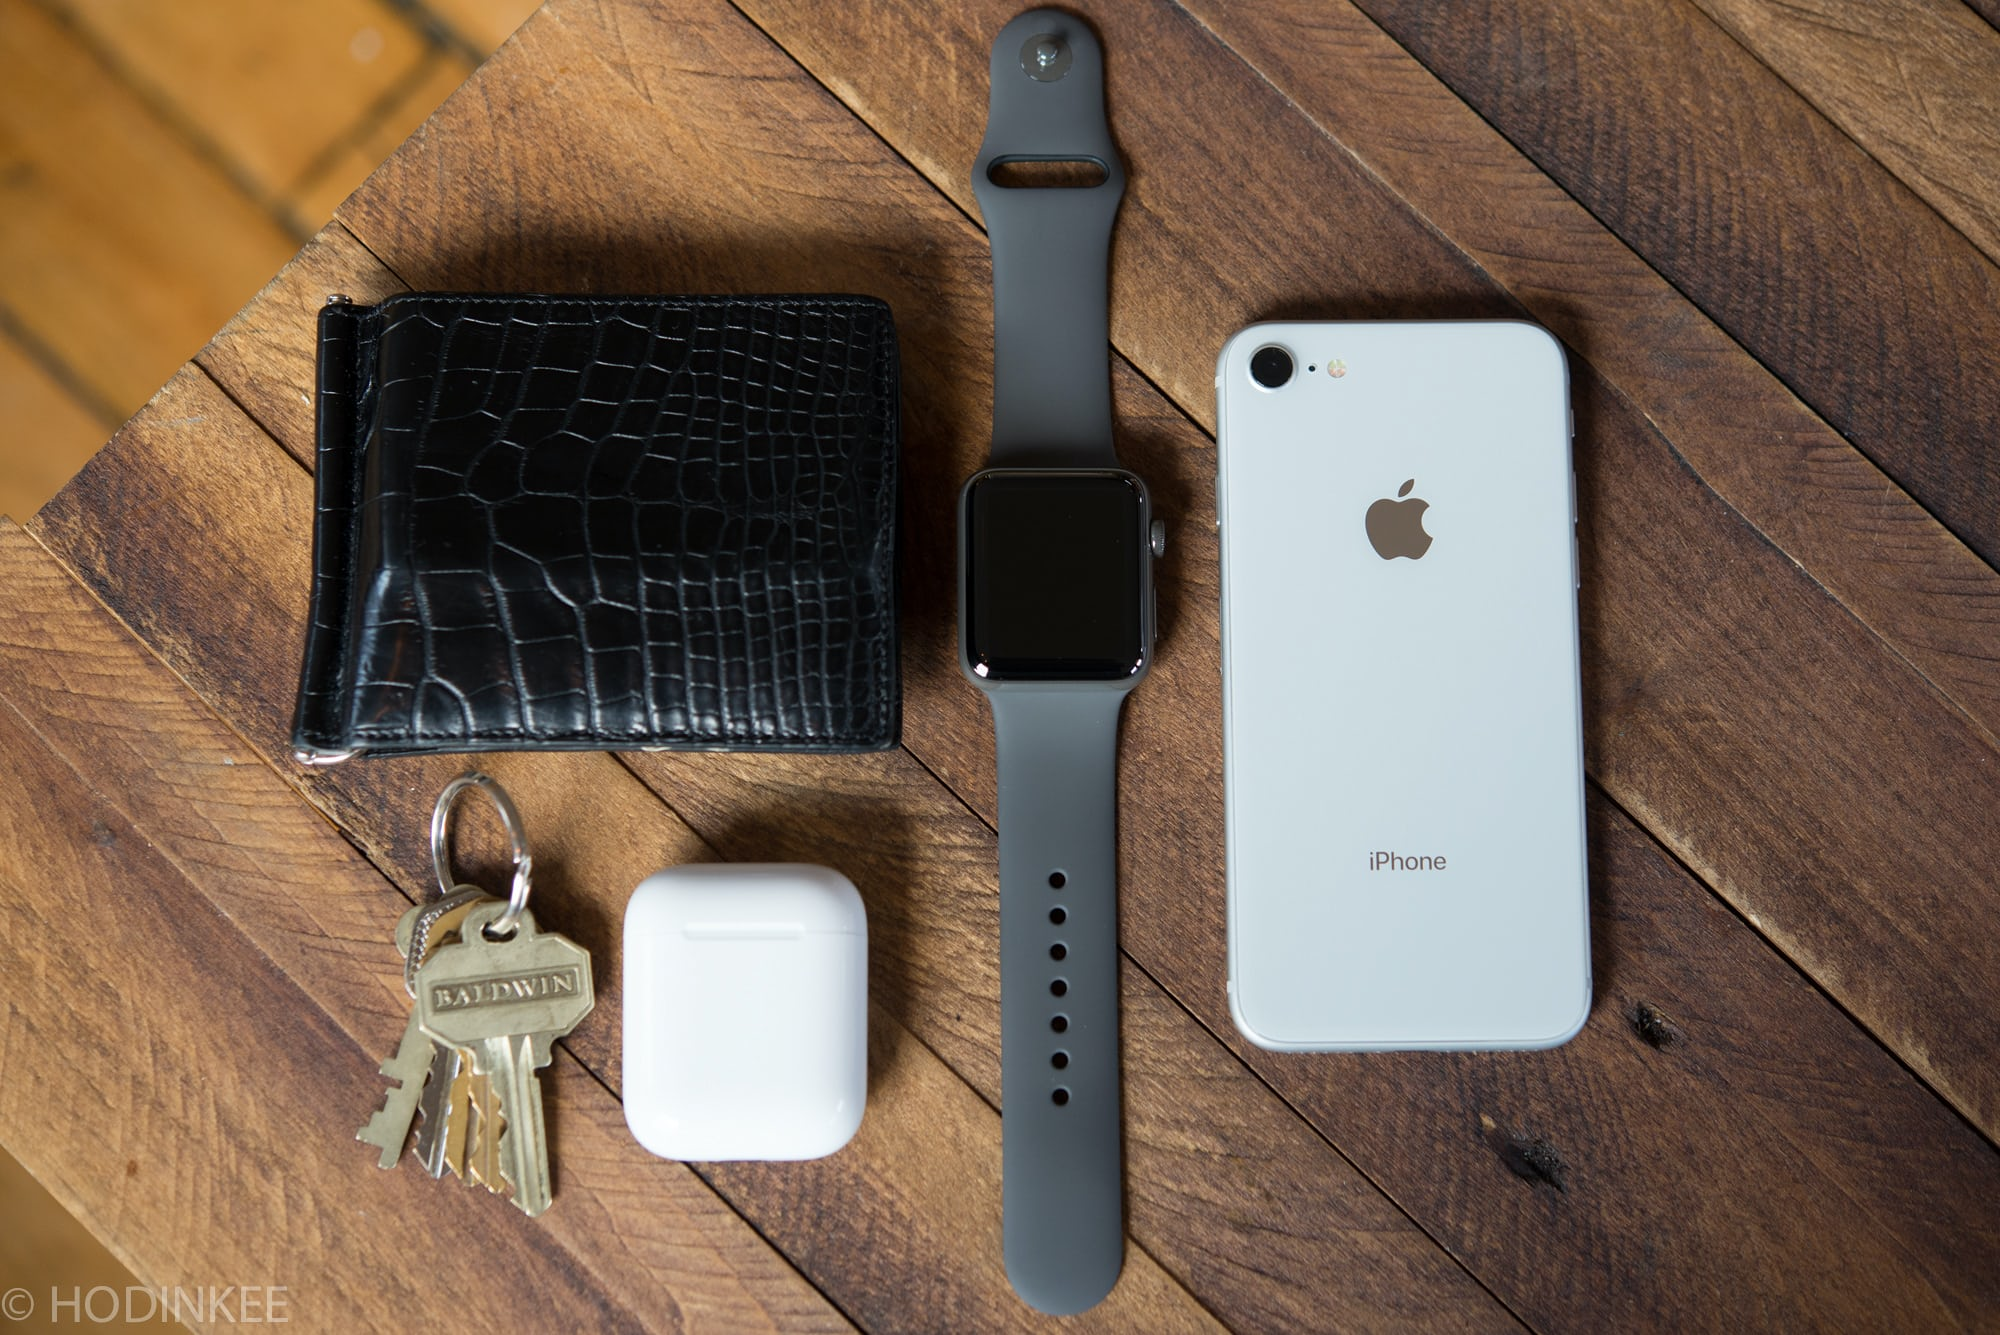 A Week On The Wrist: The Apple Watch Series 3 Edition A Week On The Wrist: The Apple Watch Series 3 Edition AppleWatchSeries3Edition 5